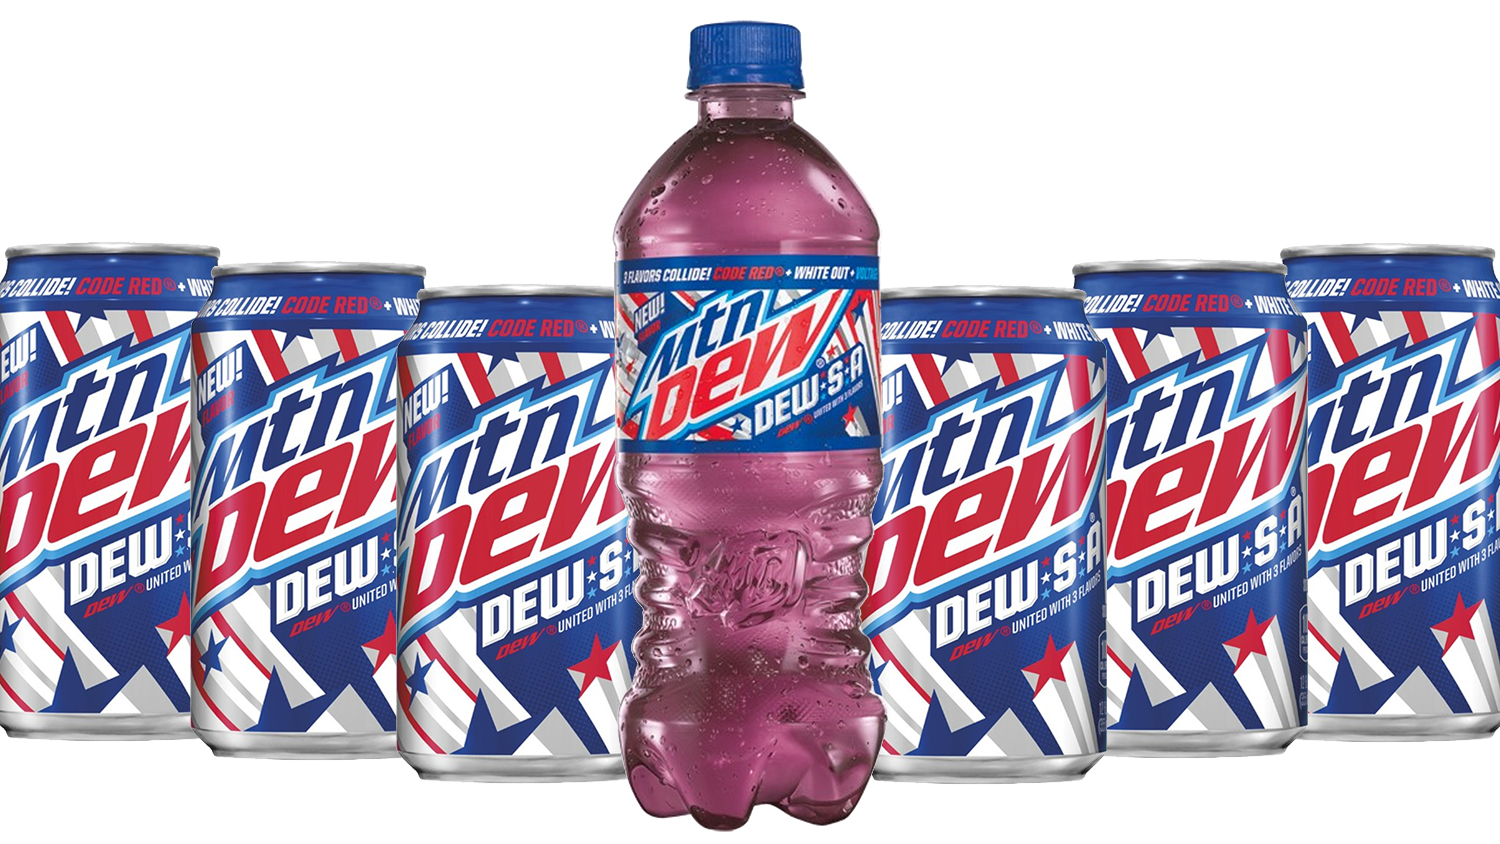 Mountain Dew new flavor DEW-S-A